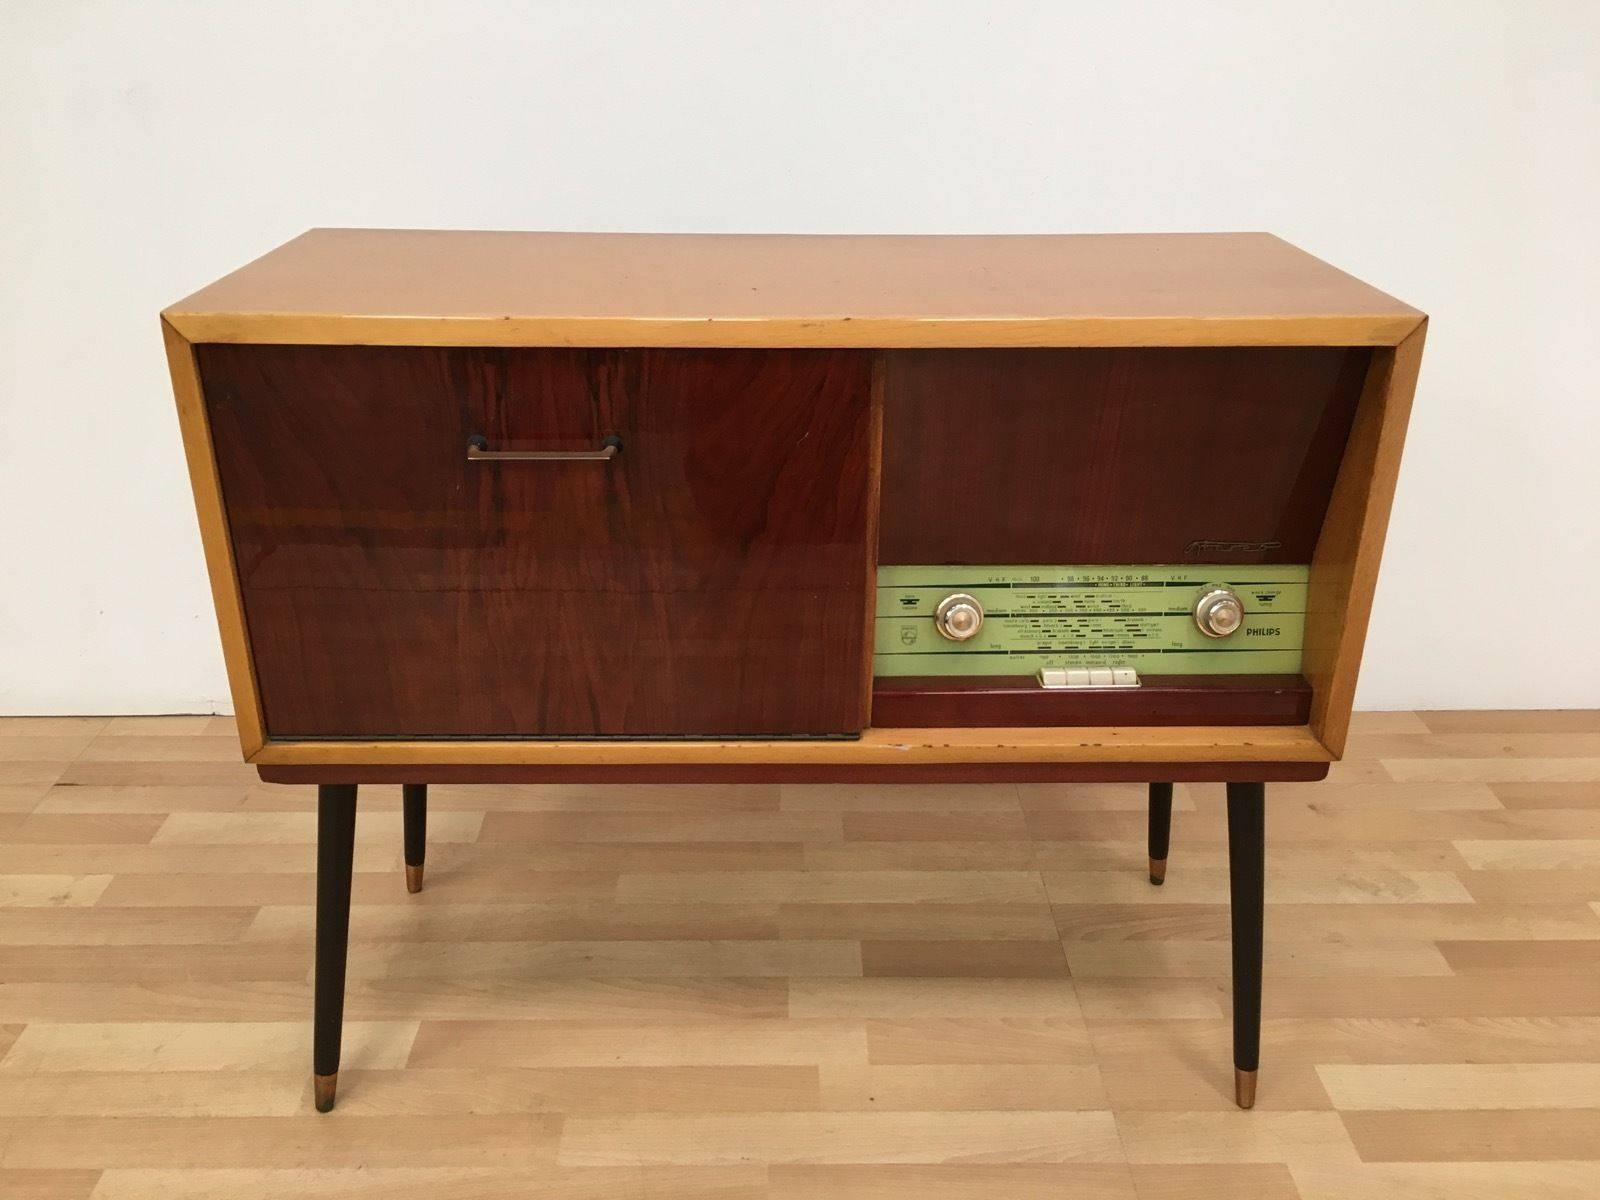 Vintage Retro Mid Century 50S 60S Philips Stereo Radiogram throughout 50S Sideboards (Image 14 of 15)